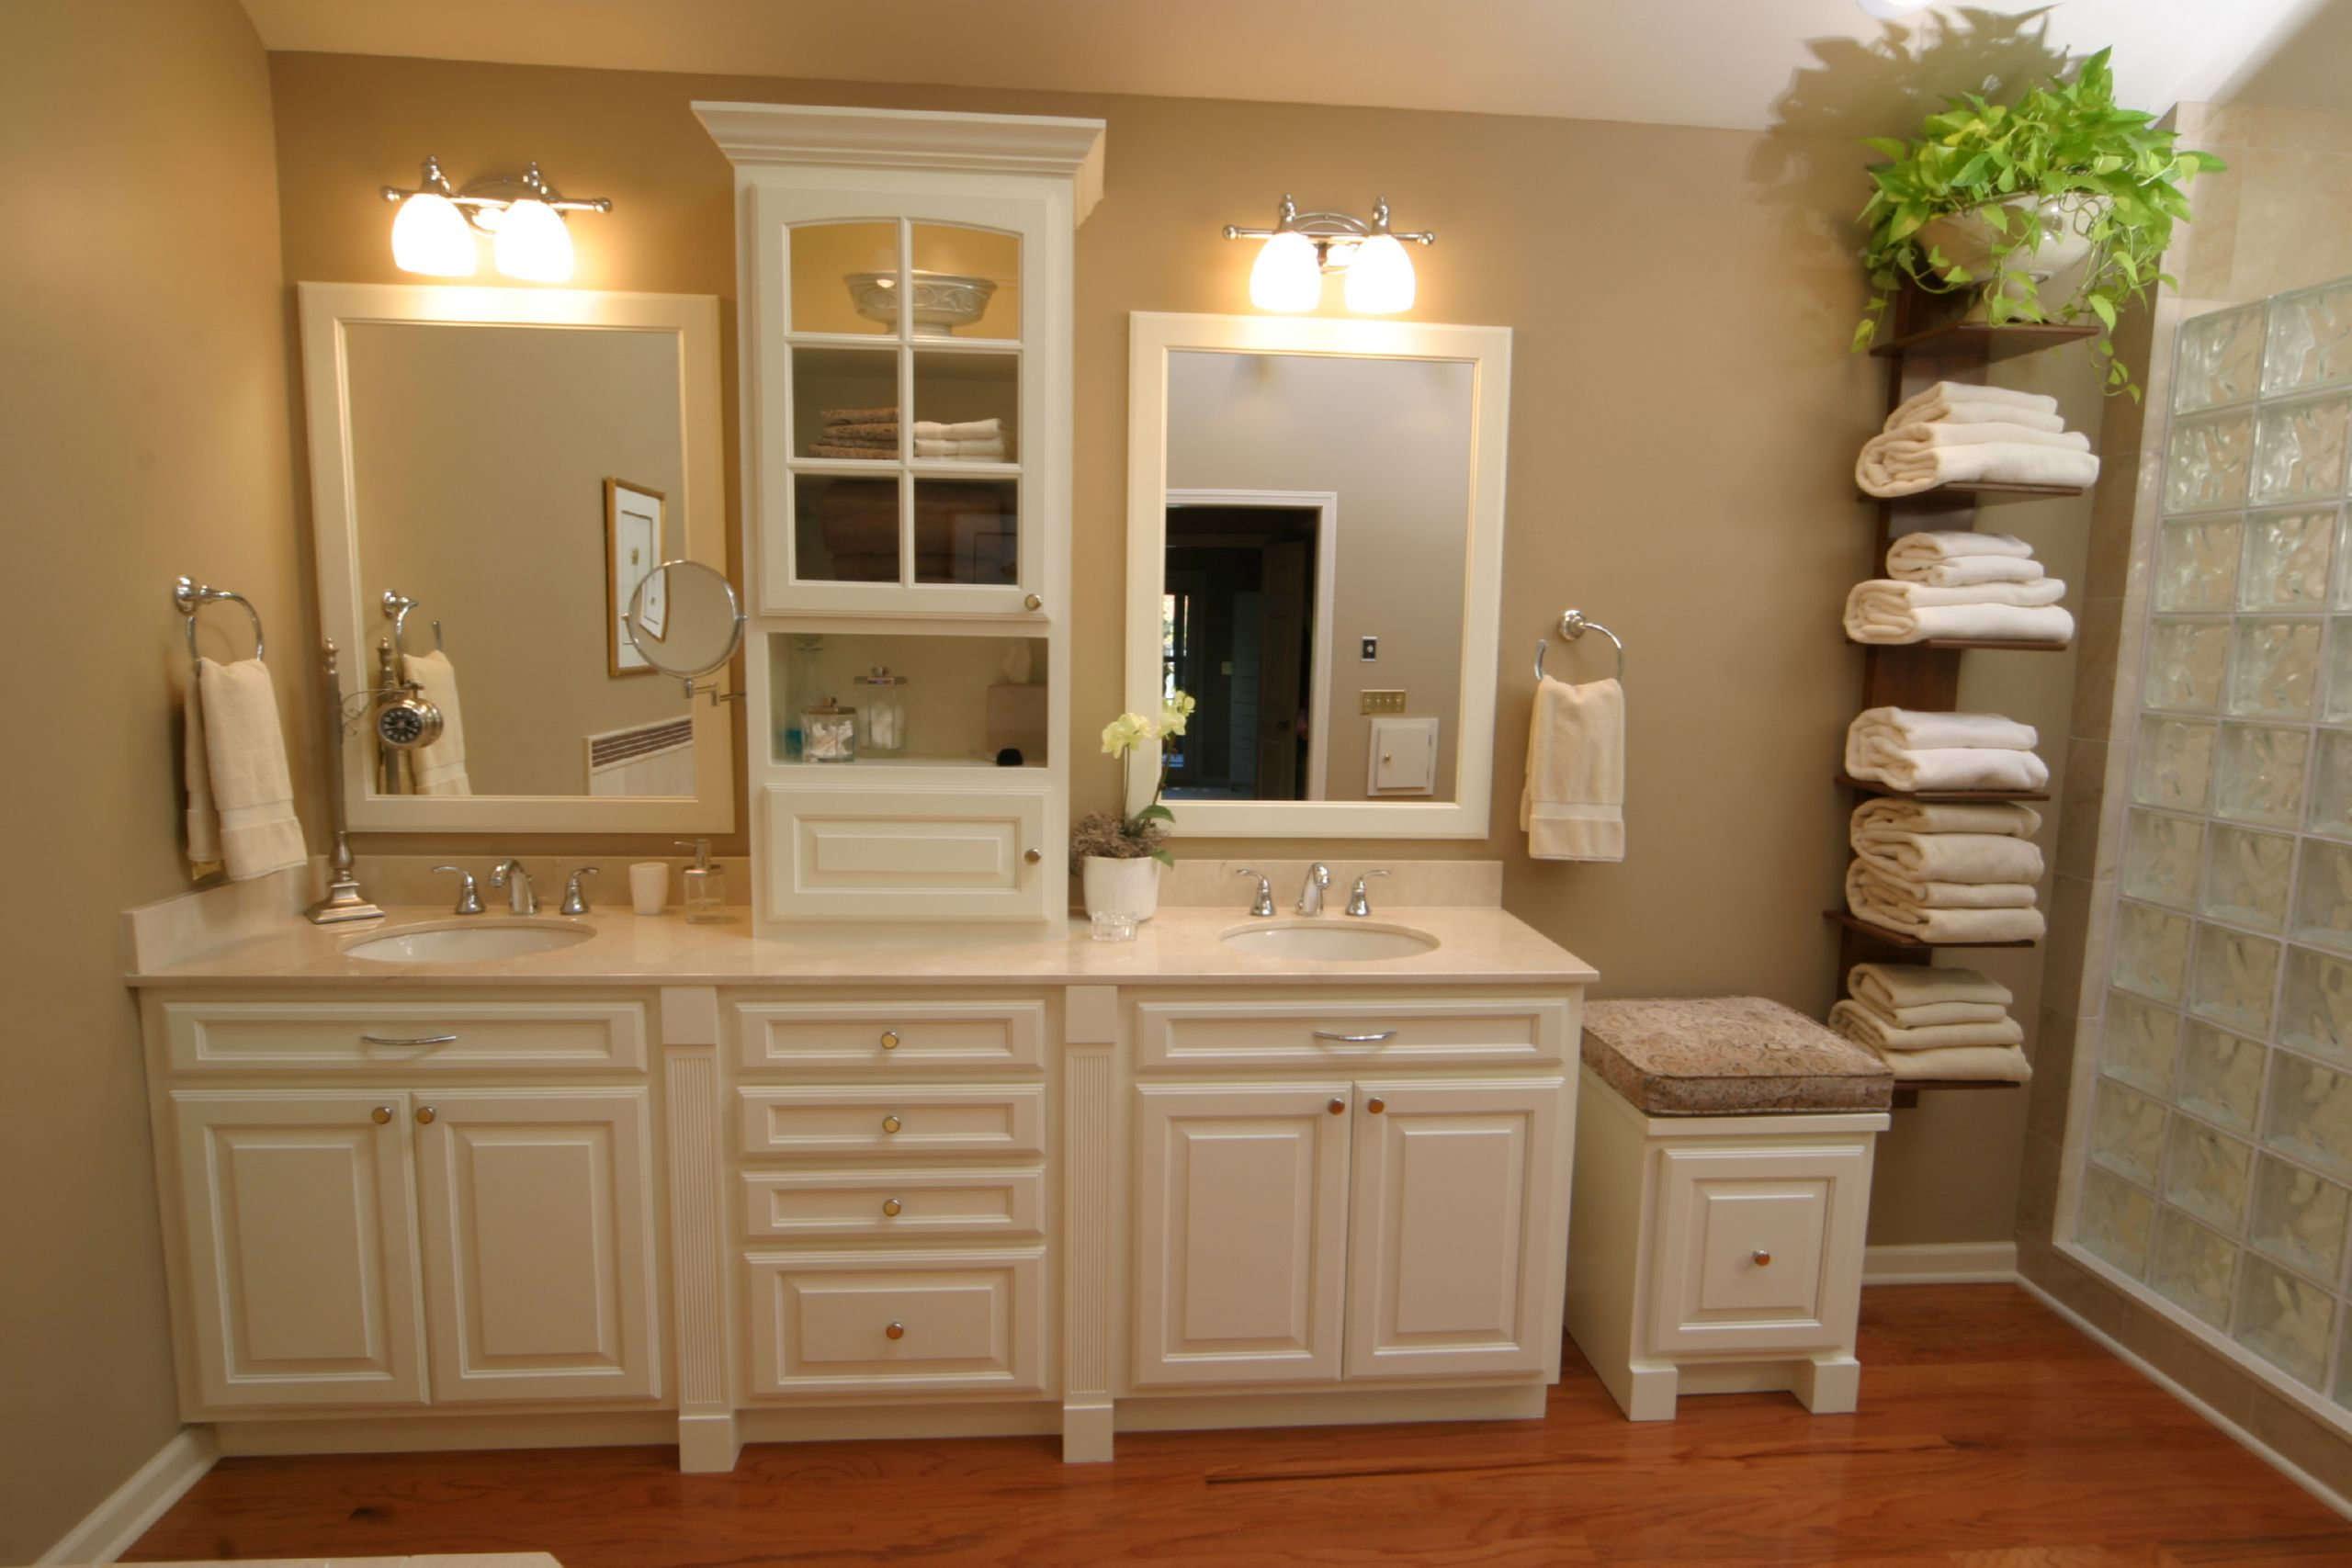 How much to remodel small bathroom large and beautiful for How much to redo a small bathroom